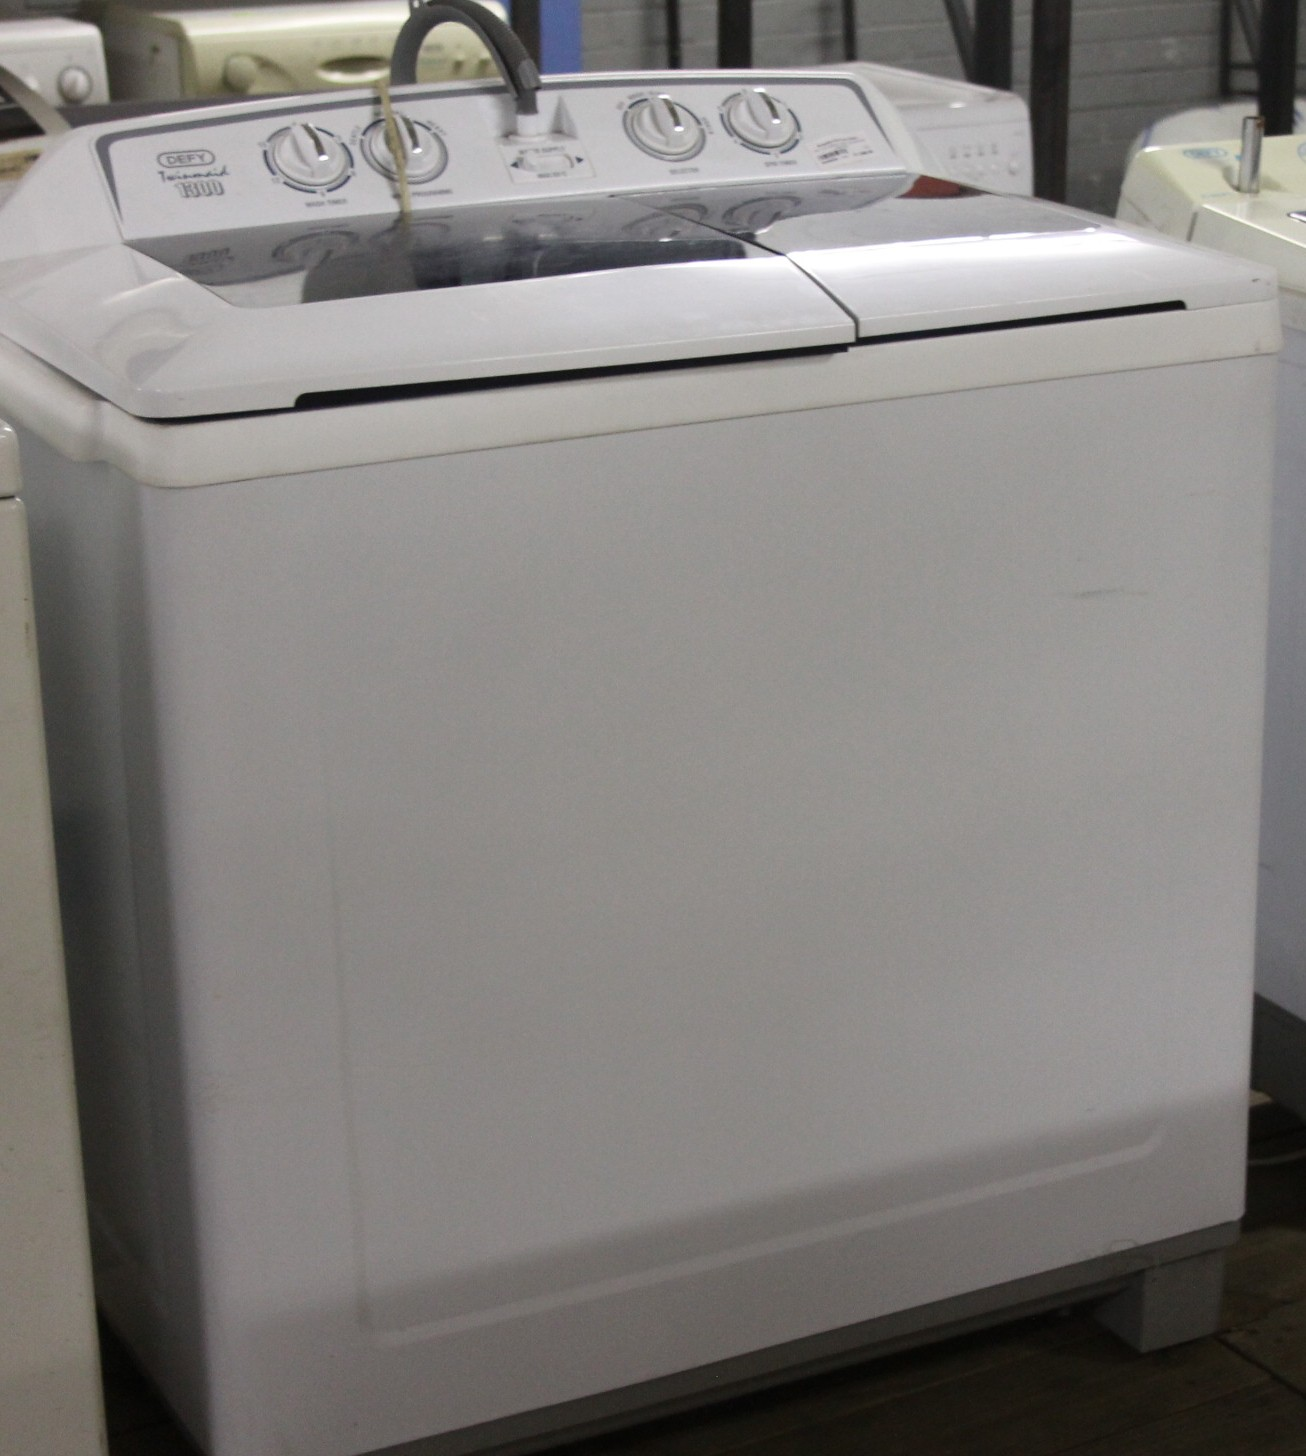 Defy washing machine S028529a  #Rosettenvillepawnshop